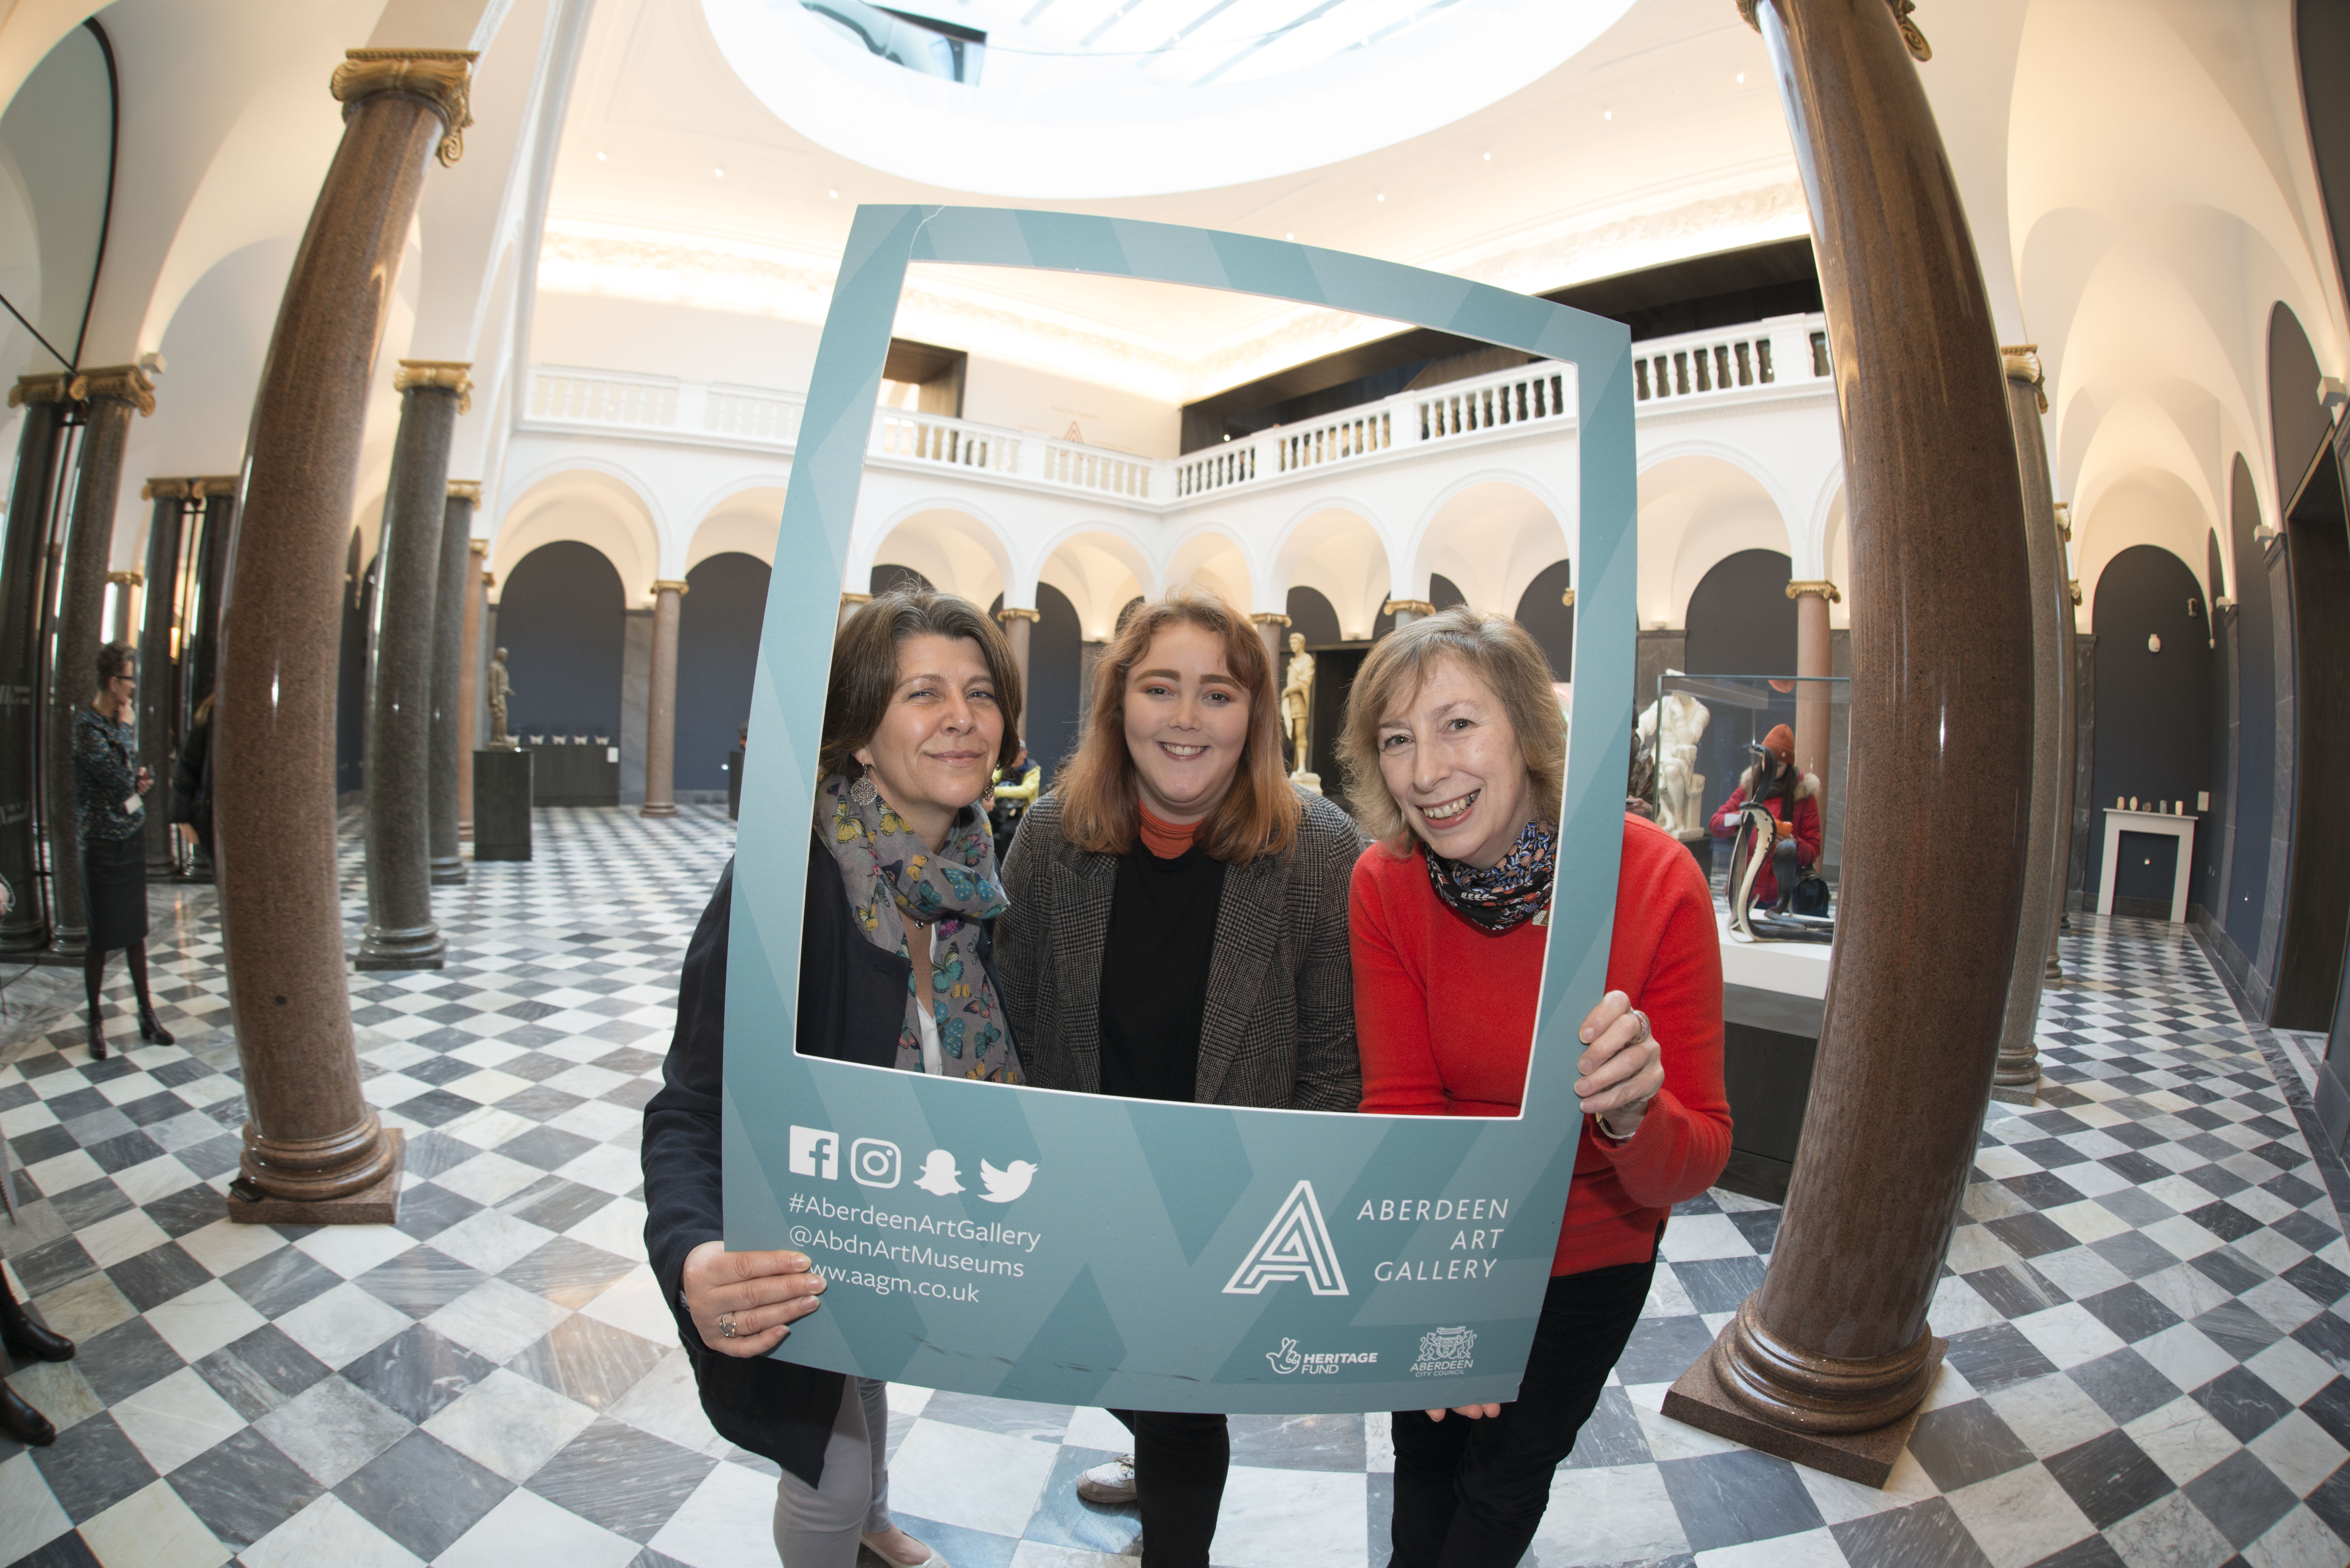 Student Ceilidh Jeffrey (centre) with Councillor Marie Boulton and museums manager Christine Rew,